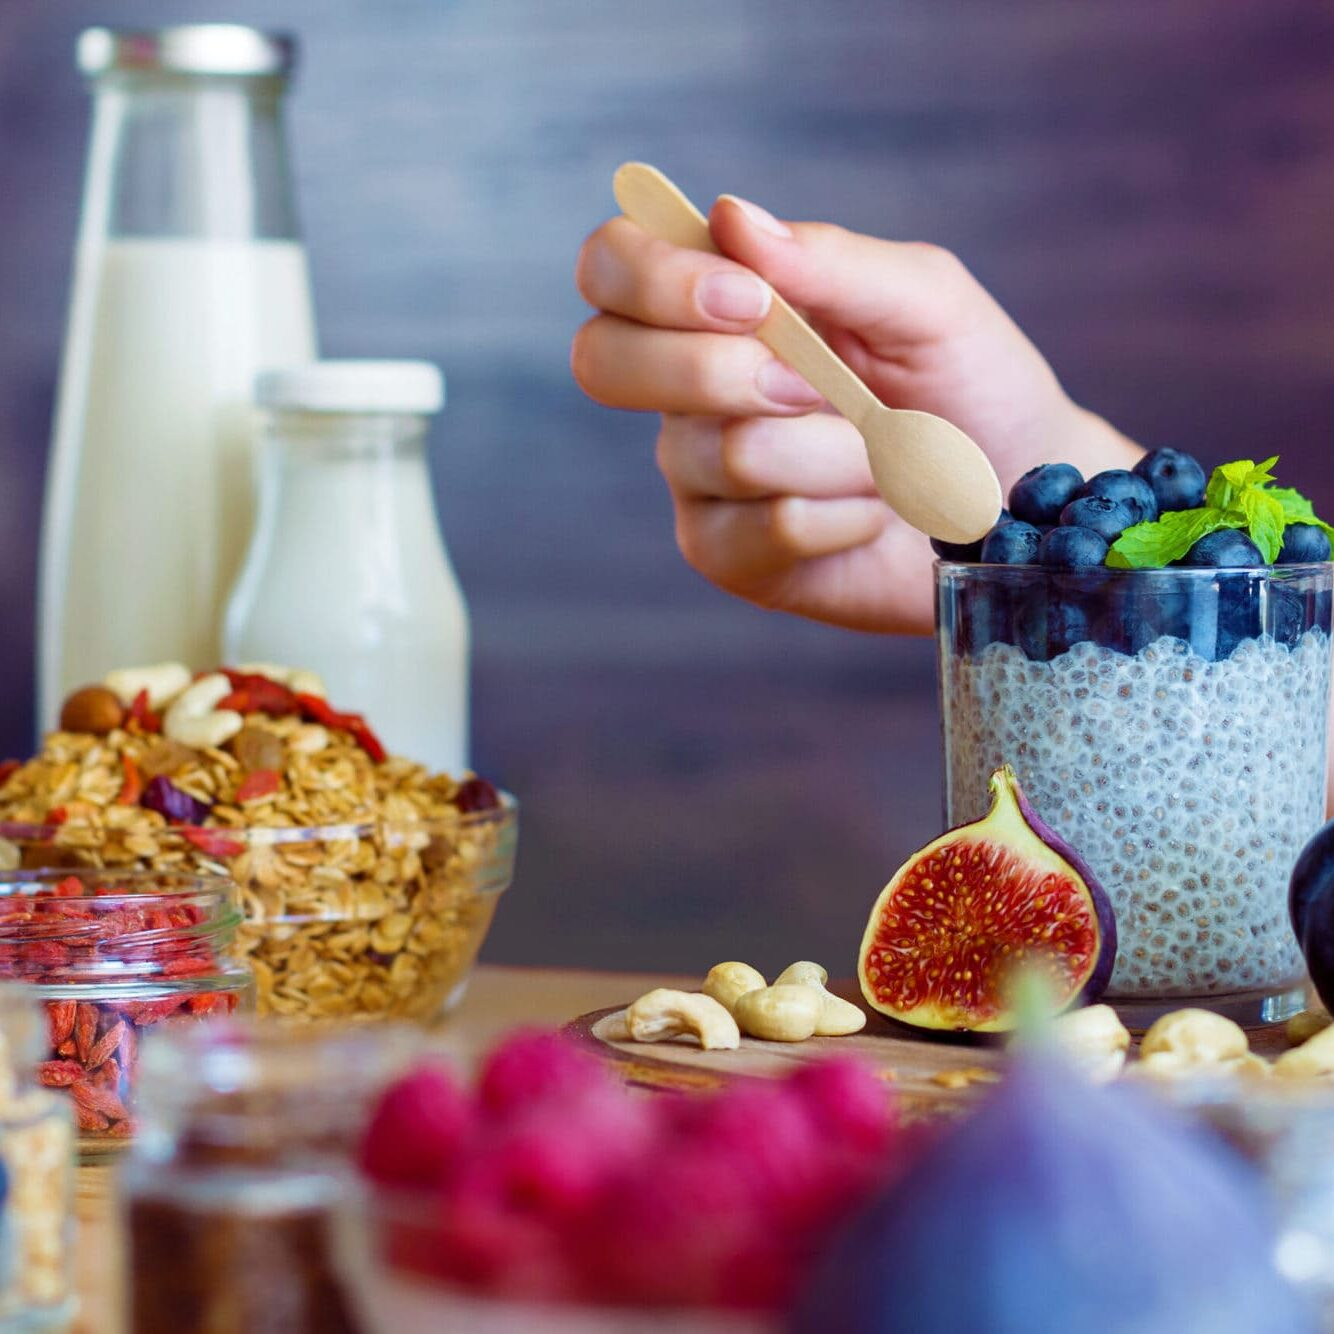 Closeup female hands are preparing organic yogurt with chia for good digestion, functioning of gastrointestinal tract. Summer berries, nuts, fruits, dairy products on table. Healthy food concept.